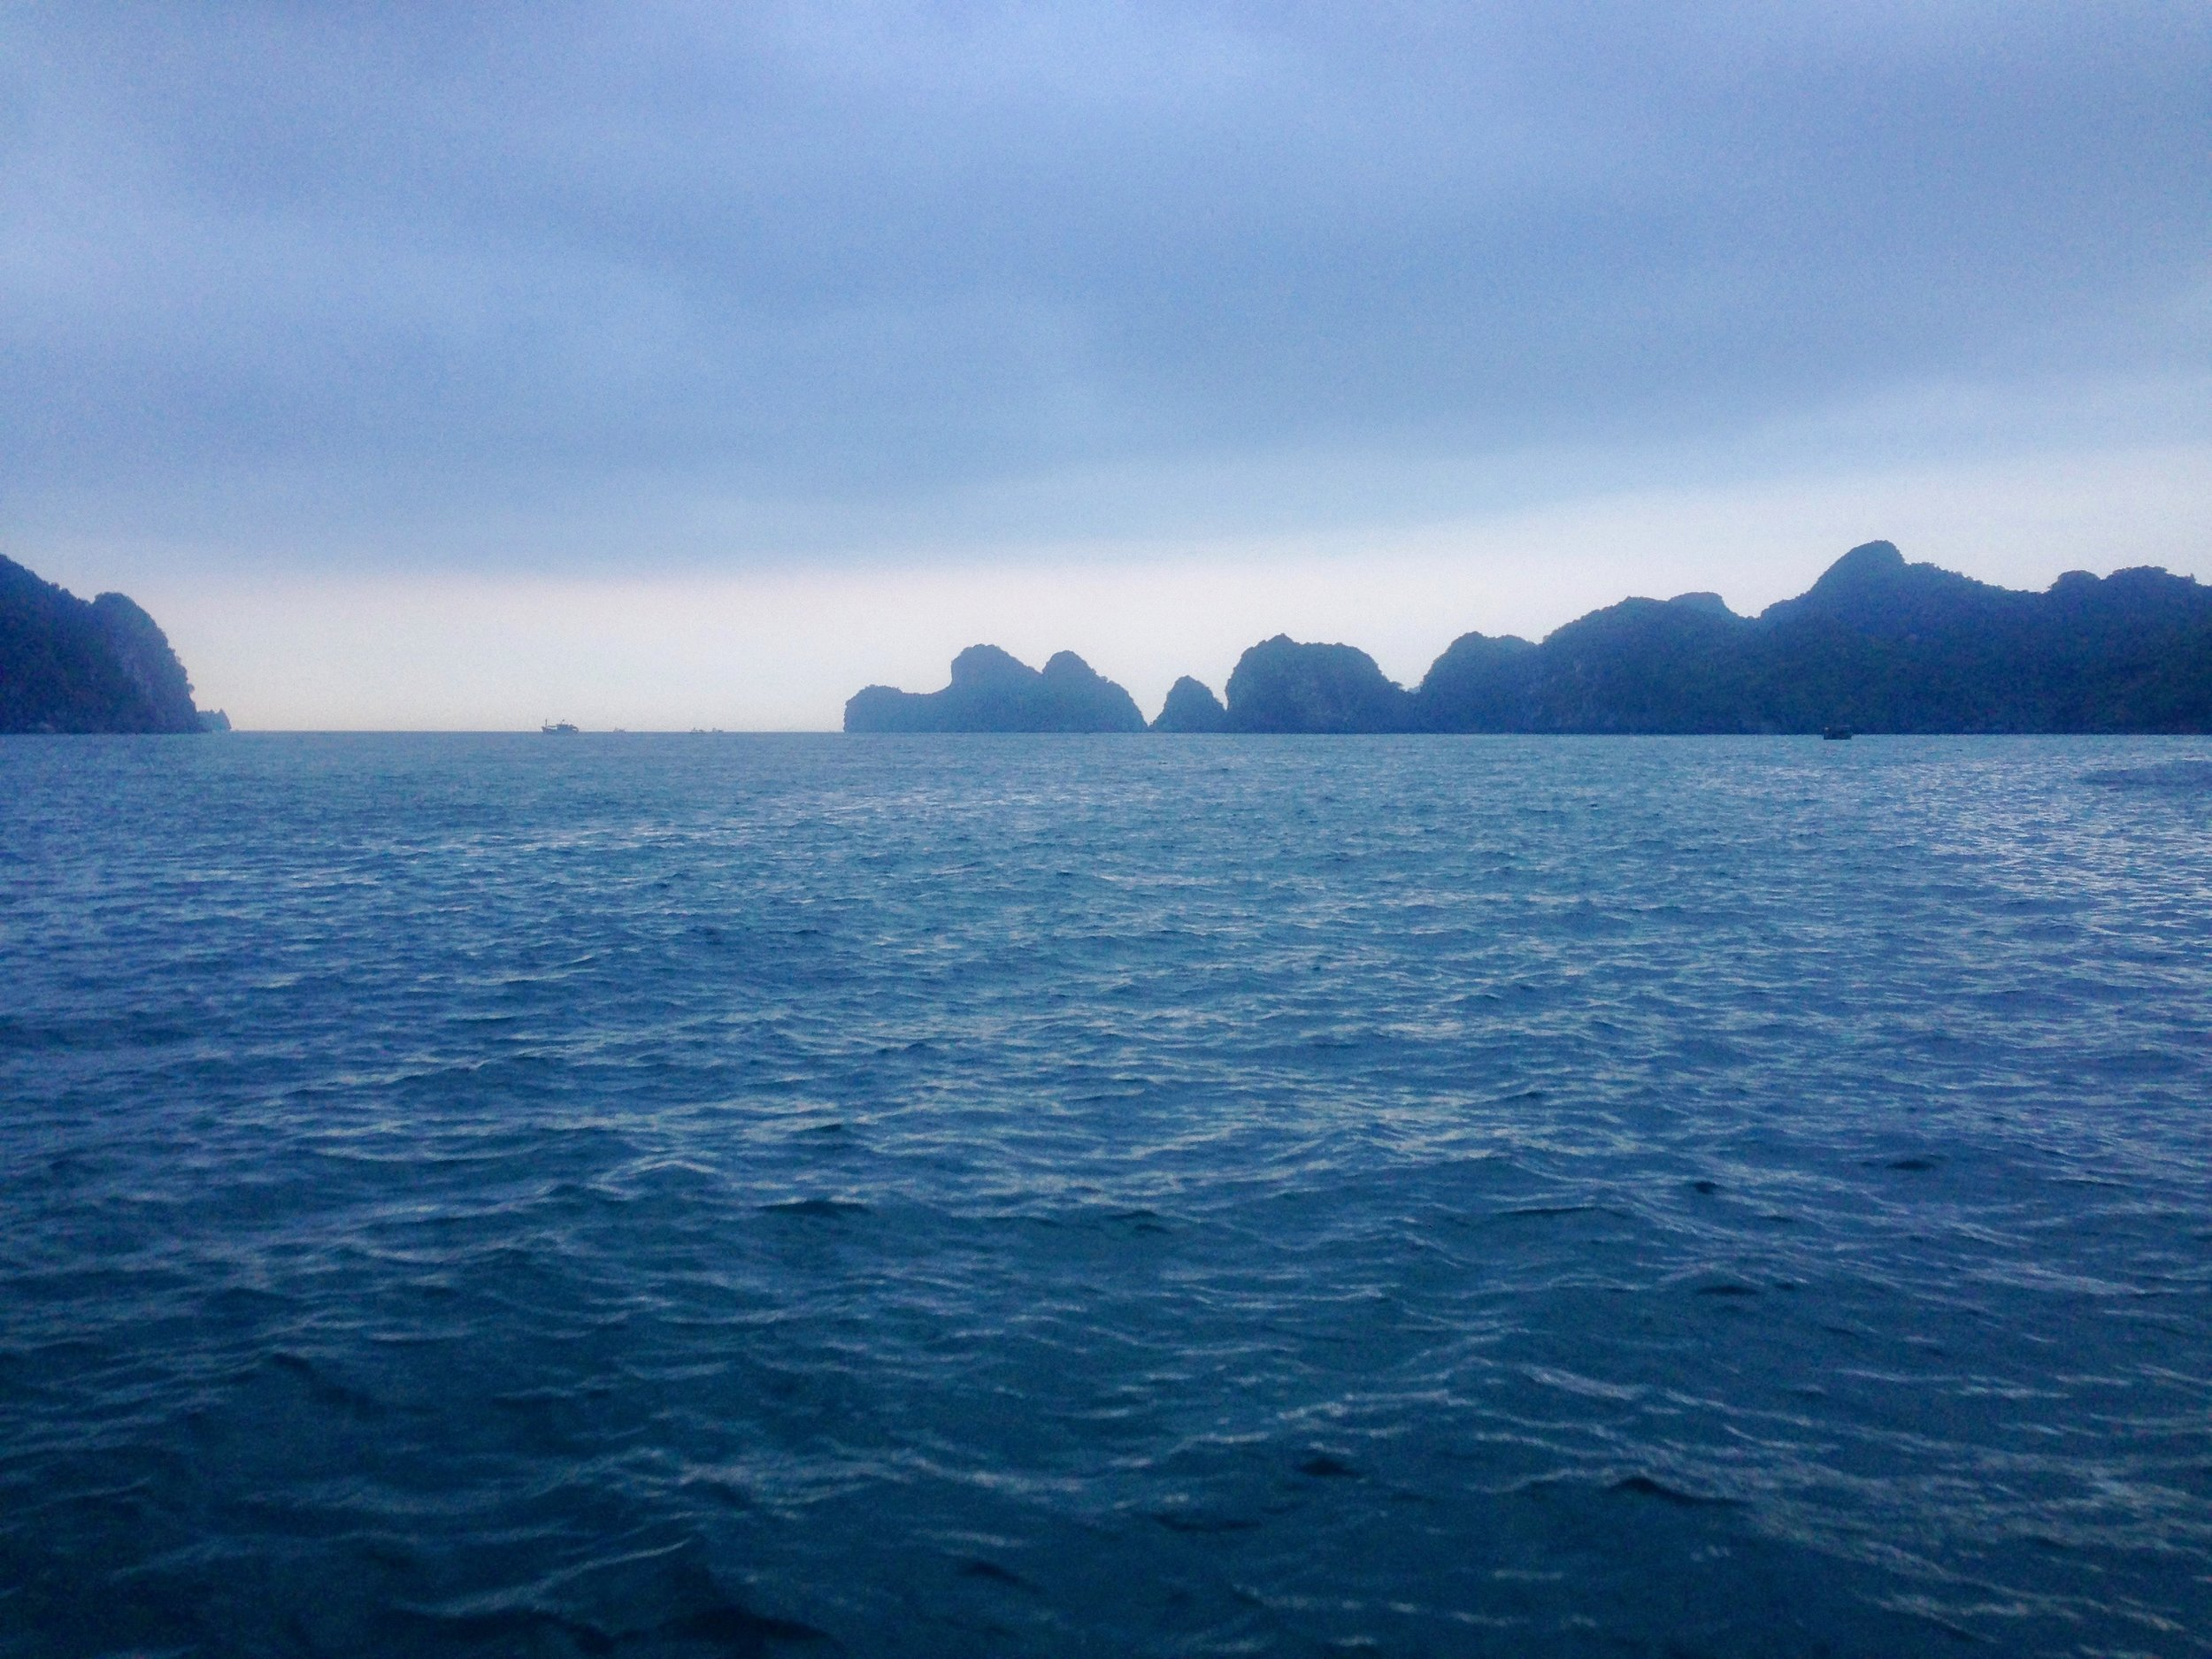 Sunset view from the boat after a full day of rock climbing (more on that next week)